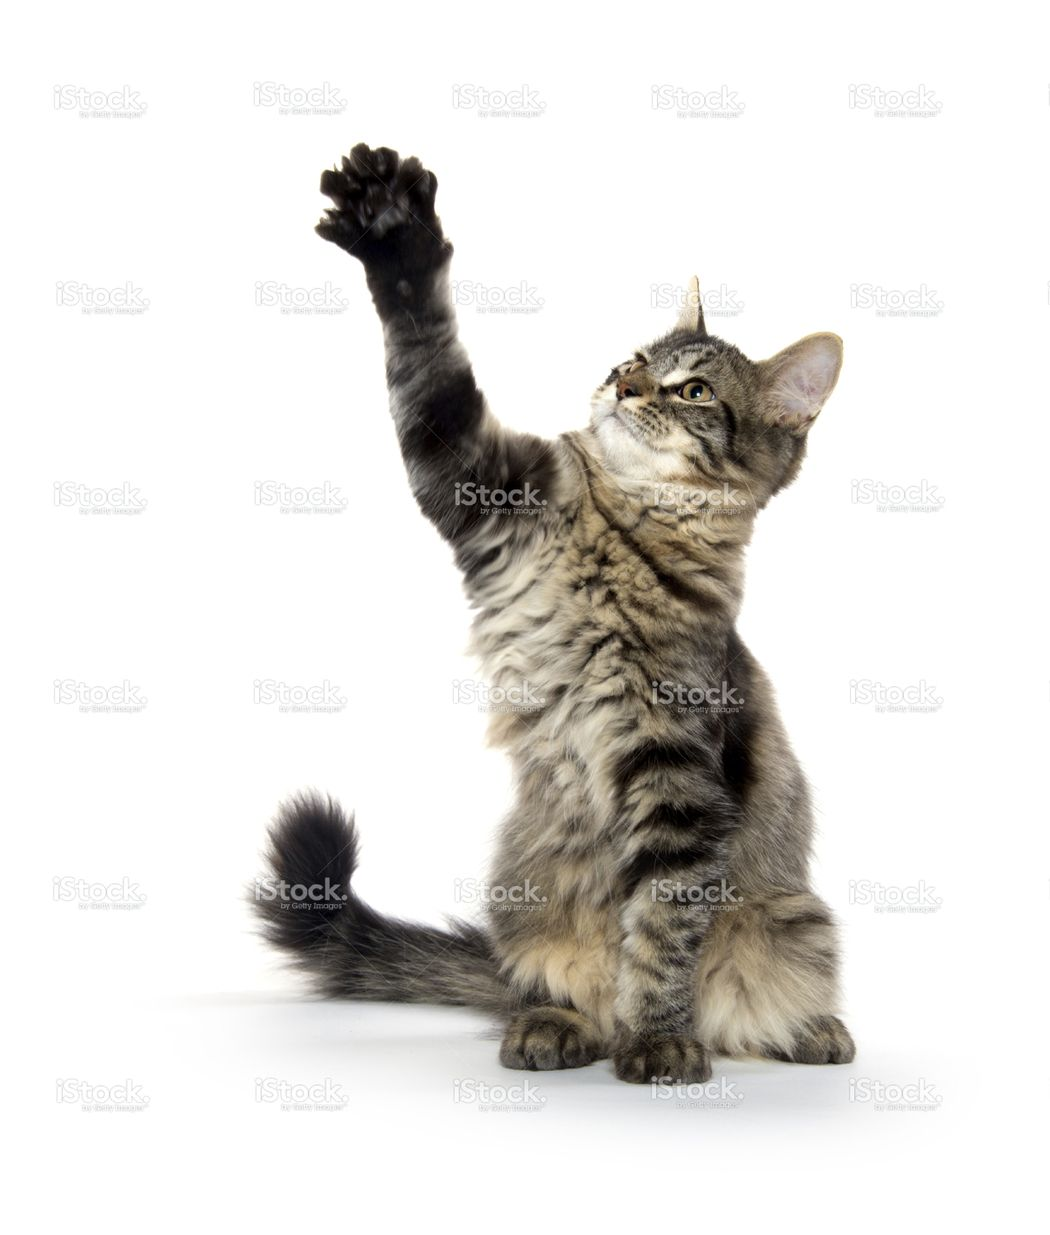 Cute Tabby Cat With Long Fluffy Tail Playing On White Background